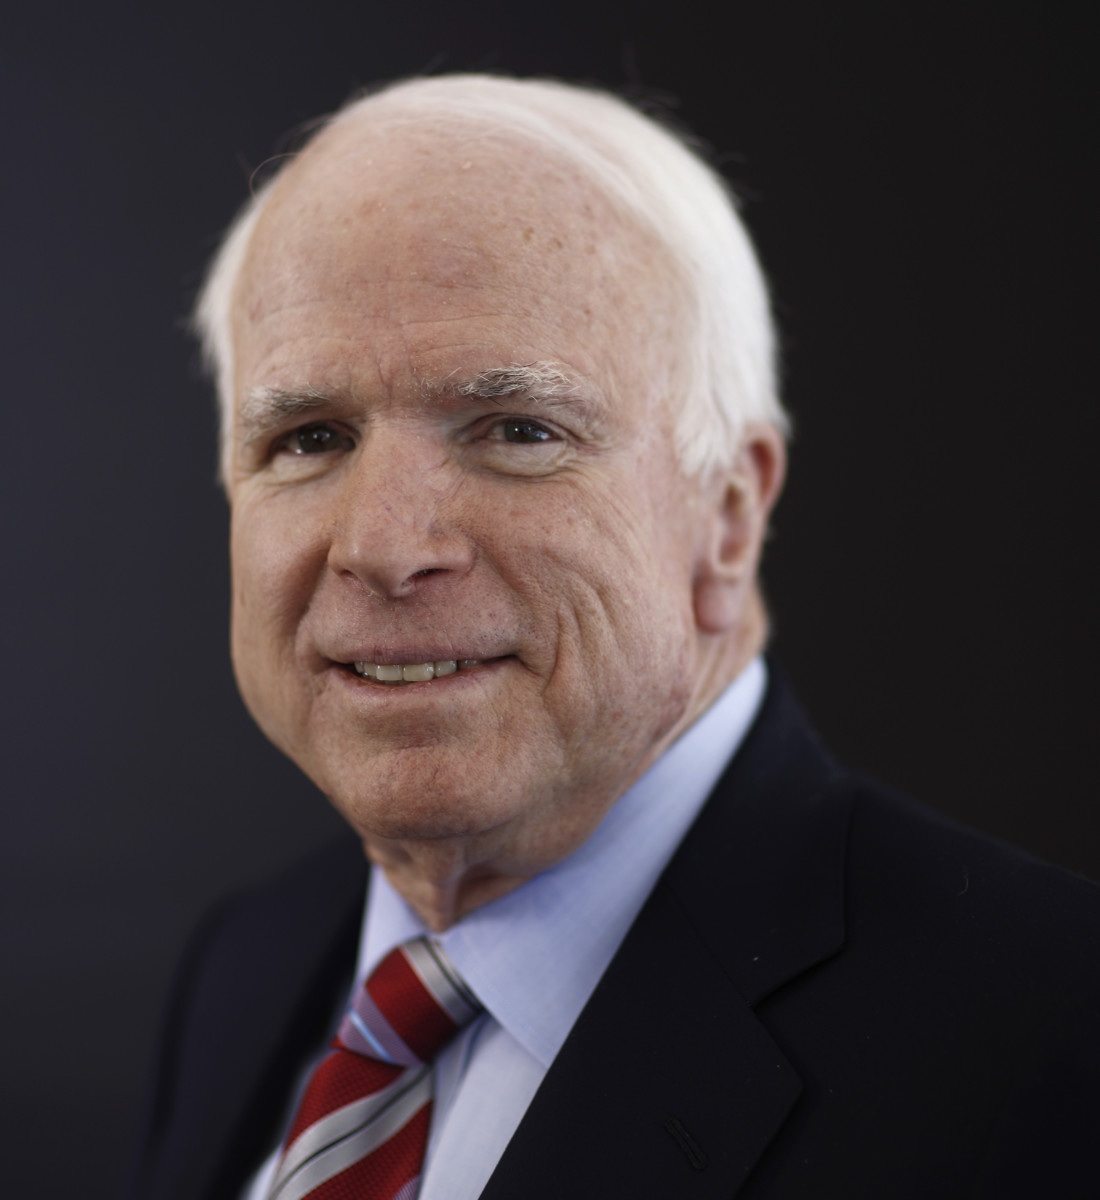 John Mccain Latest News Photos And Videos: John McCain Death